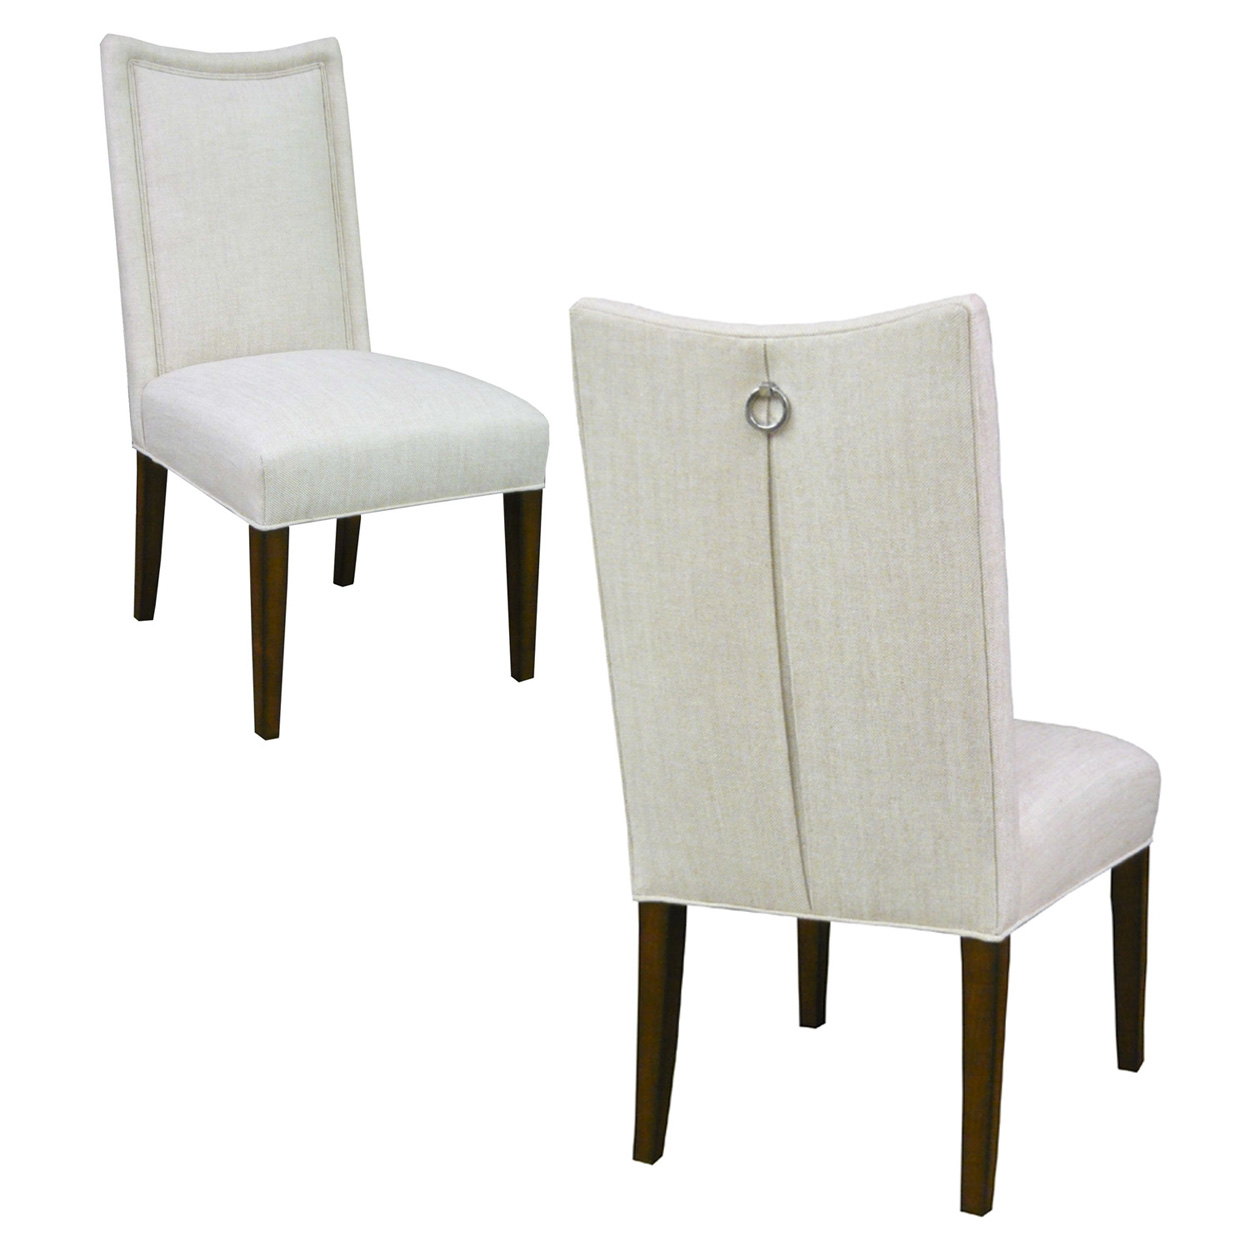 Custom Upholstered Side Chair: Custom Upholstered Side Chair With Pleated Back + Ring Pull